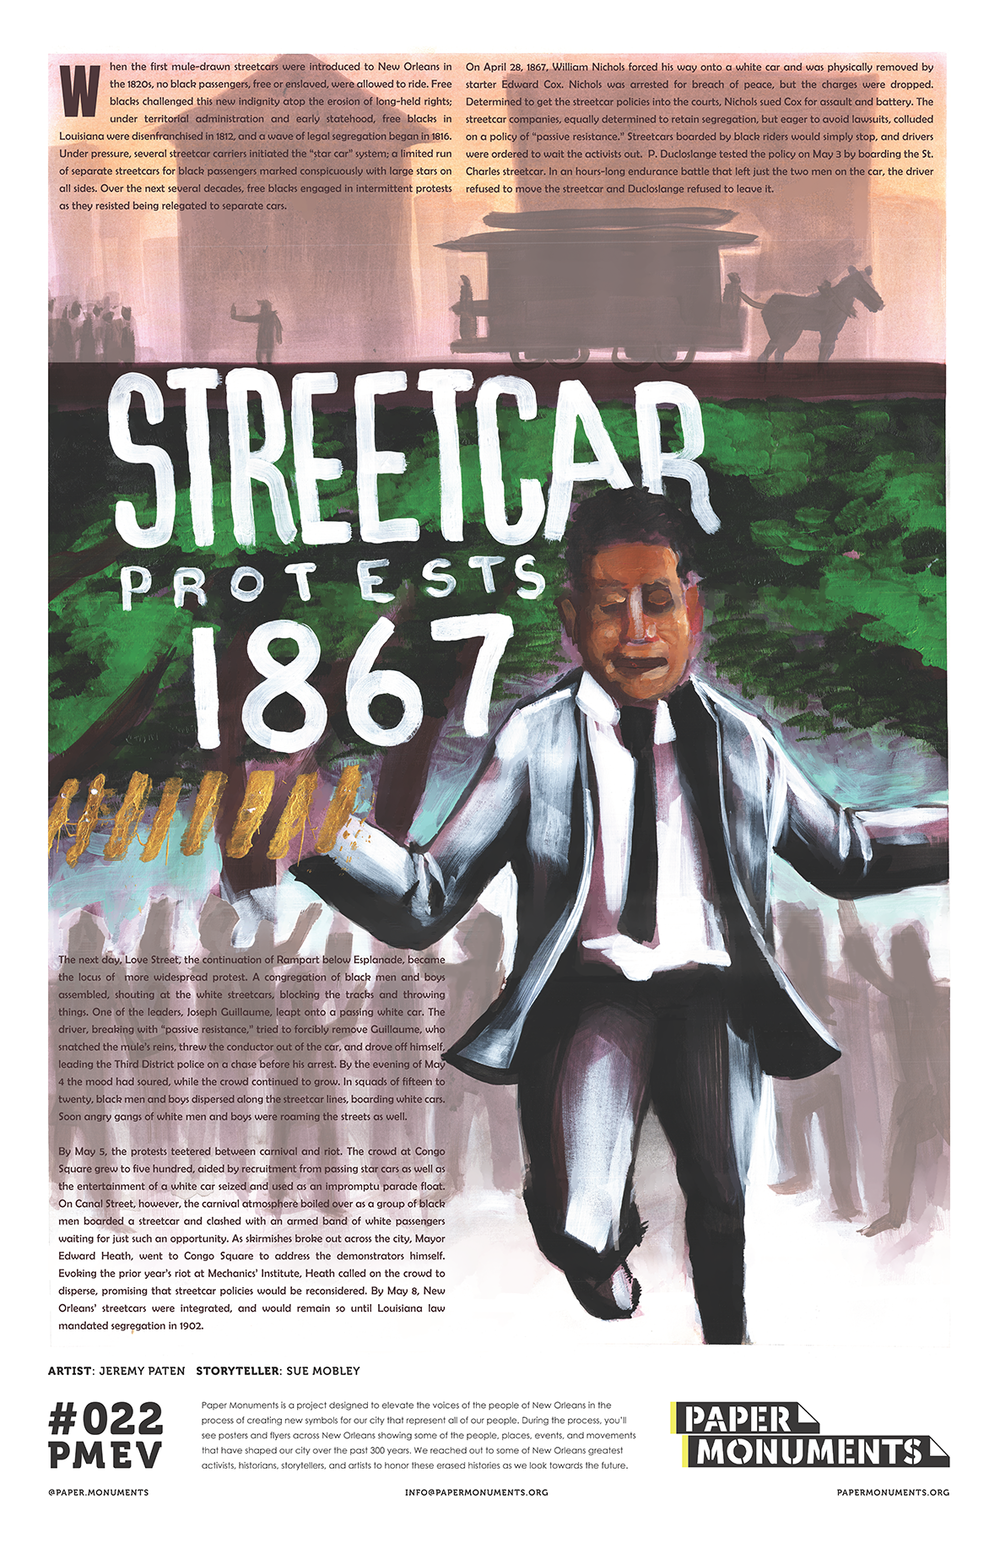 fb_PMEV#022_1867StreetcarProtests_JeremyPaten_bleeds.png